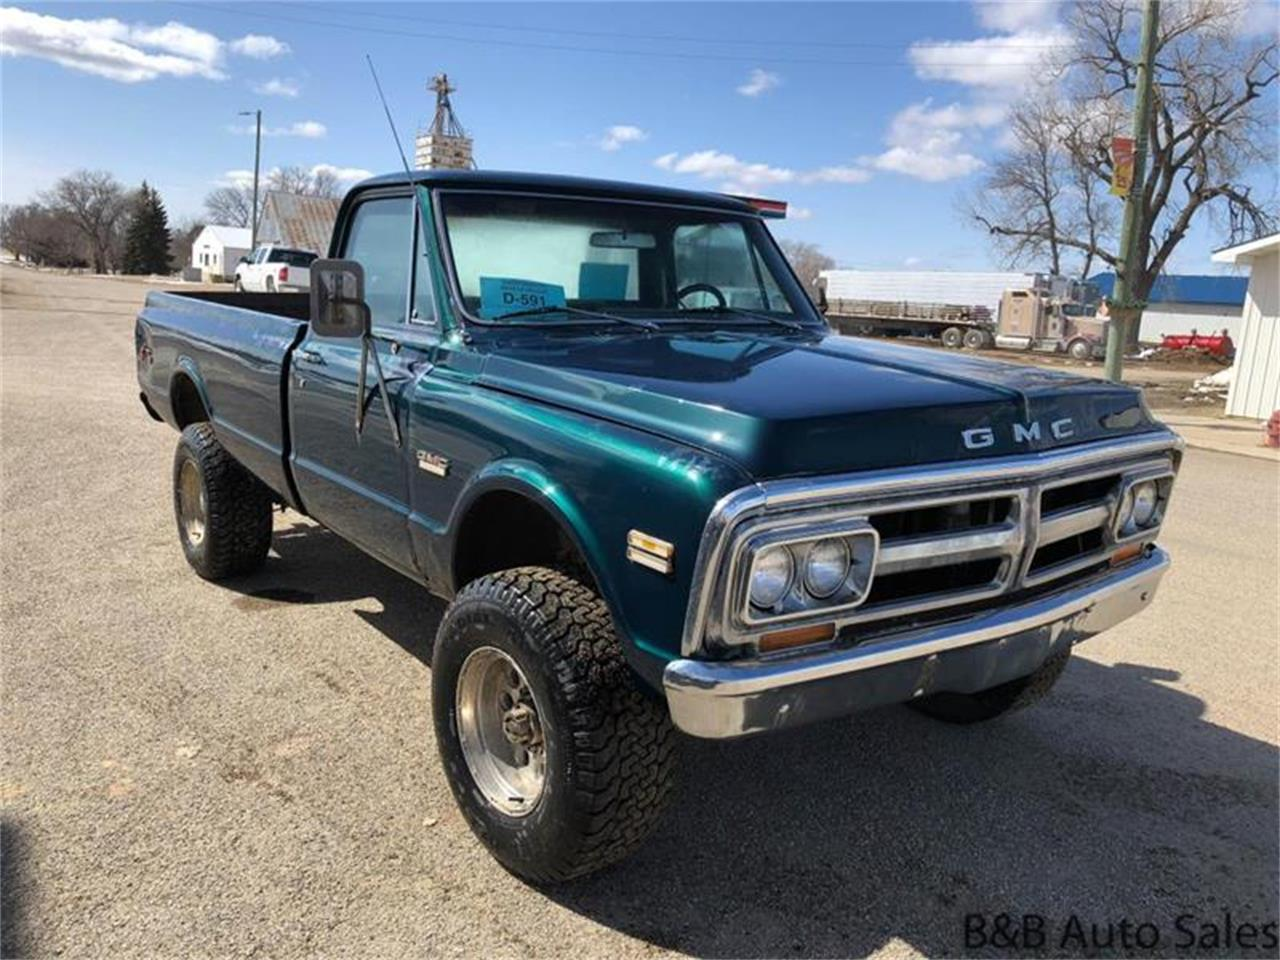 For Sale: 1971 GMC K20 in Brookings, South Dakota